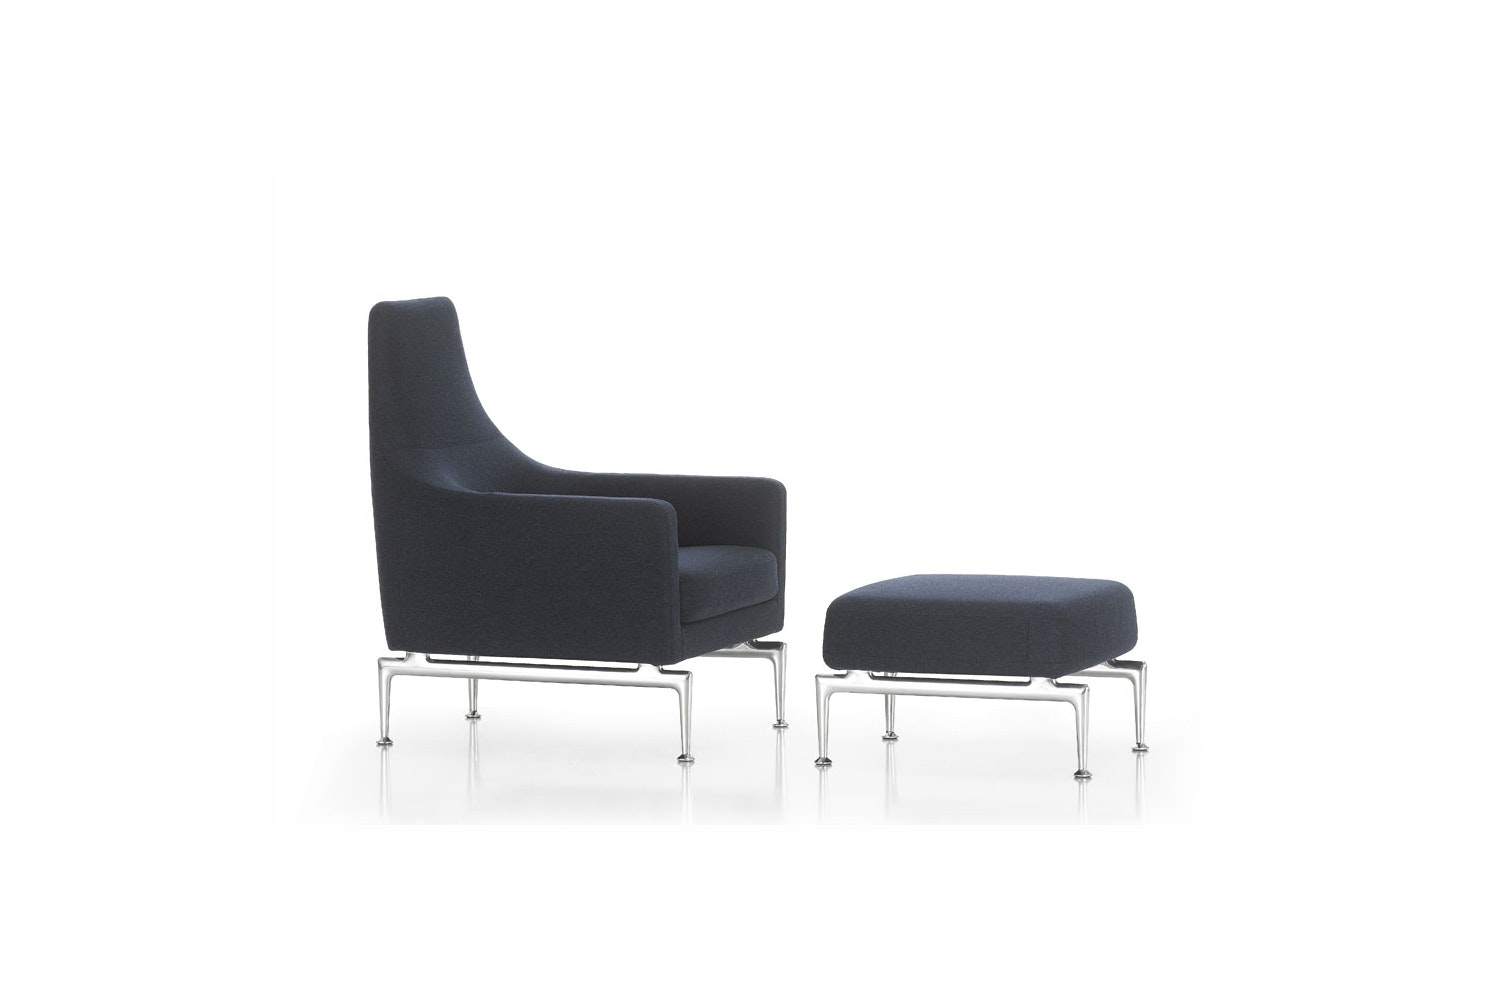 Suita Fauteuil Armchair & Ottoman by Antonio Citterio for Vitra